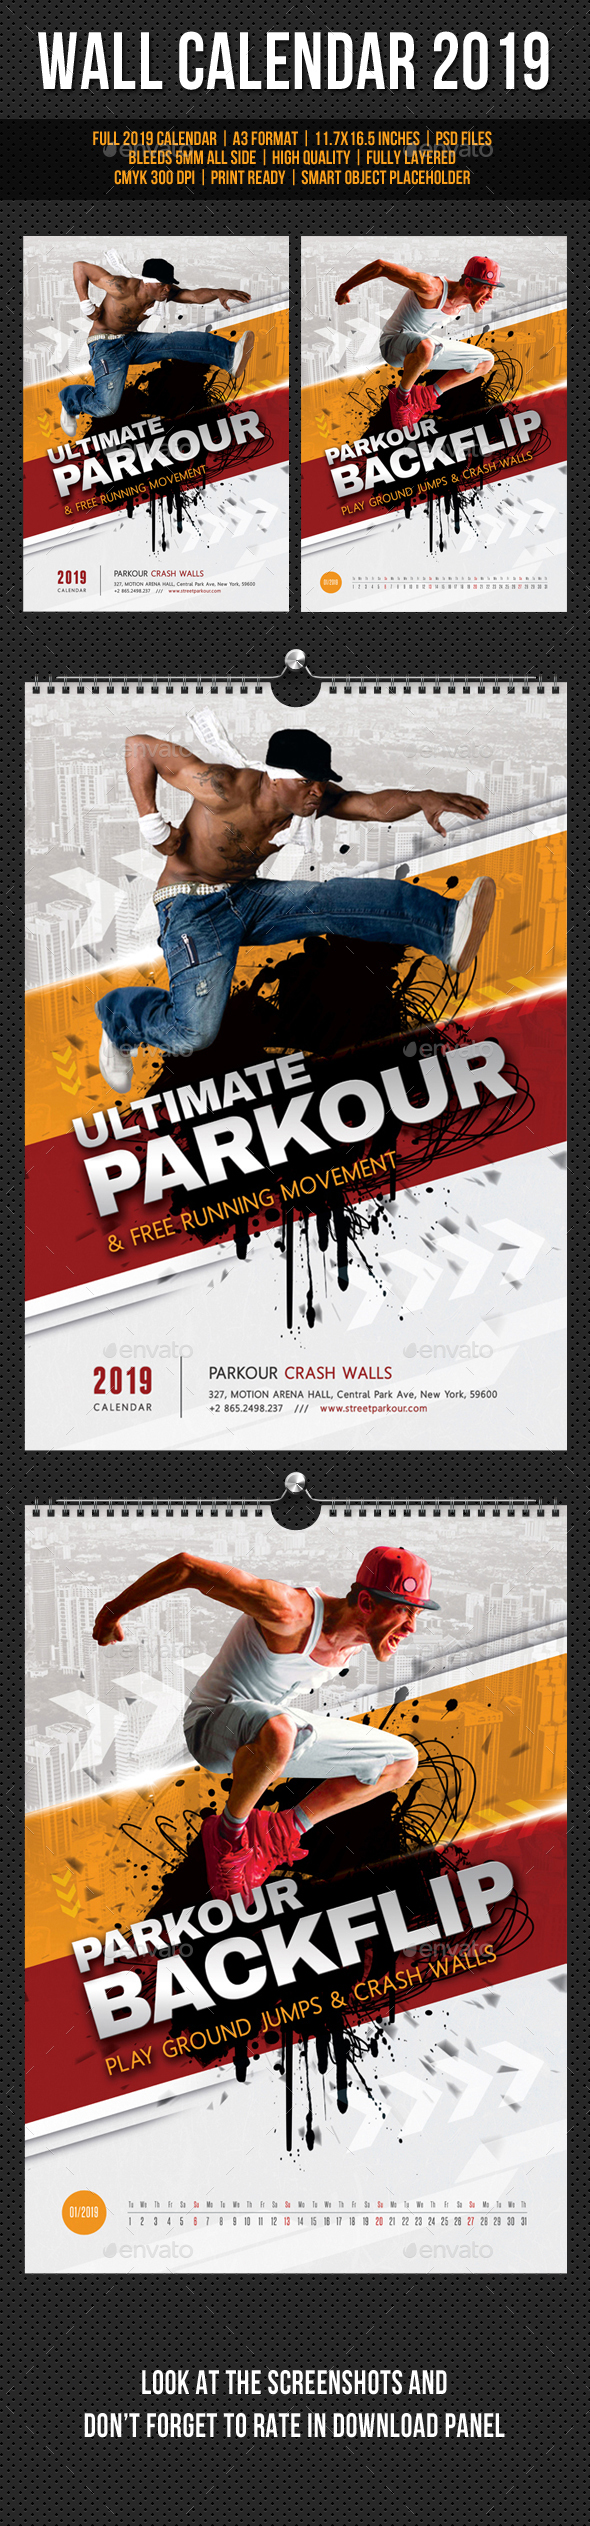 Ultimate Parkour Wall Calendar A3 2019 - Calendars Stationery